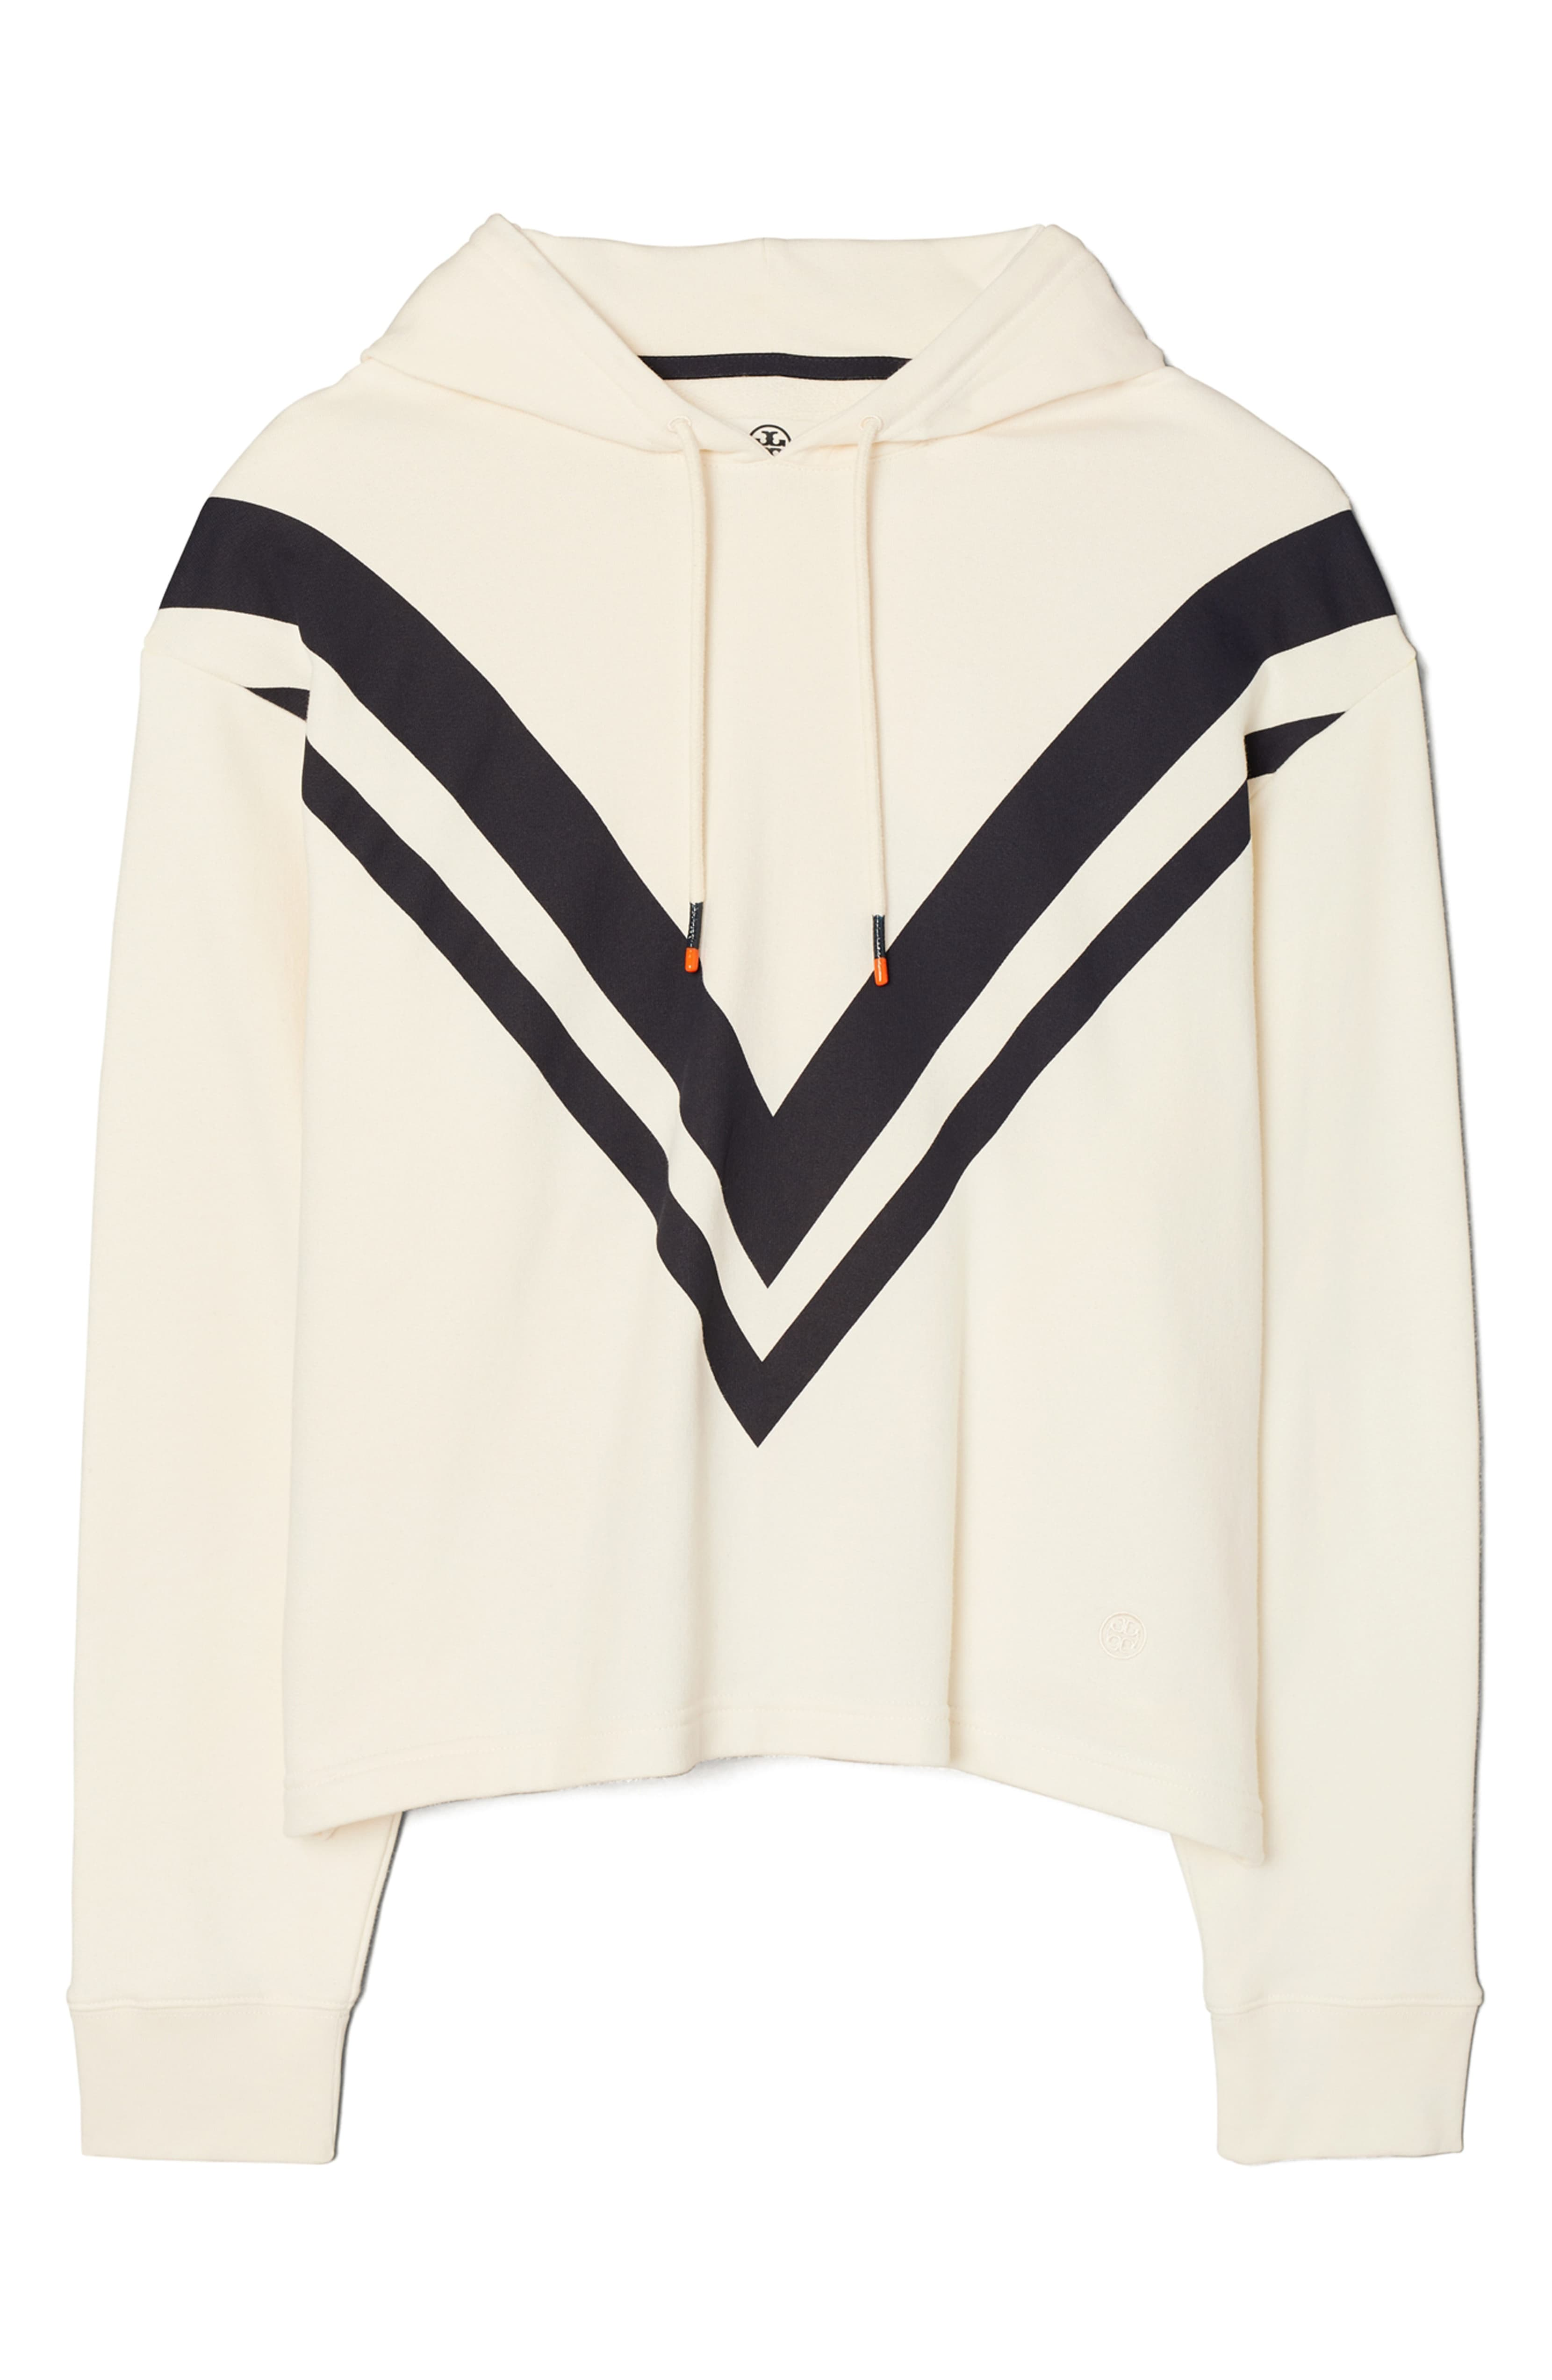 "<p>Chevron stripes are printed boldly at the front of this sporty cotton hoodie perfect for wearing to and from your next gym session.{&nbsp;}<a  href=""https://www.nordstrom.com/s/tory-sport-by-tory-burch-french-terry-chevron-hoodie/5684451?origin=category-personalizedsort&breadcrumb=Home%2FWomen%2FClothing%2FSweatshirts%20%26%20Hoodies&color=ivory%20pearl%2F%20tory%20navy"" target=""_blank"" title=""https://www.nordstrom.com/s/tory-sport-by-tory-burch-french-terry-chevron-hoodie/5684451?origin=category-personalizedsort&breadcrumb=Home%2FWomen%2FClothing%2FSweatshirts%20%26%20Hoodies&color=ivory%20pearl%2F%20tory%20navy"">Shop it</a>, $178. (Image: Nordstrom){&nbsp;}</p>"